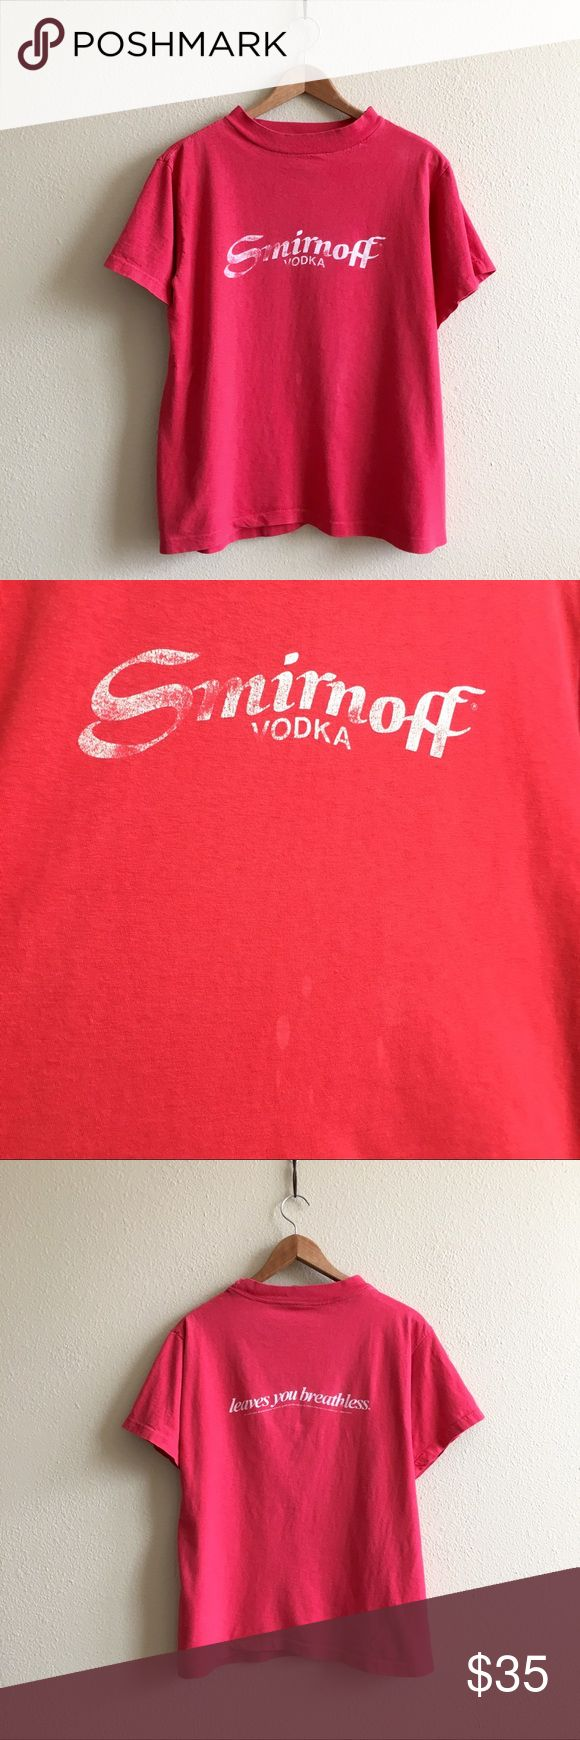 '82 / Smirnoff Vodka Tee Super soft red Smirnoff tee. Has a few small bleach marks on front as shown. This is a true vintage shirt, not a modern reproduction. Sizes vary on vintage pieces, so please use measurements for best idea on fit.   BRAND: - MATERIAL: 50/50 YEAR/ERA: 1982 LABEL SIZE: - BEST FIT: M  MEASUREMENTS: Chest 20.5 inches Length 25 inches  → Style inspiration: James Hetfield, 1983 ☒ I do not model or trade, sorry! ❁ Check out my closet for more vintage! Vintage Tops Tees…